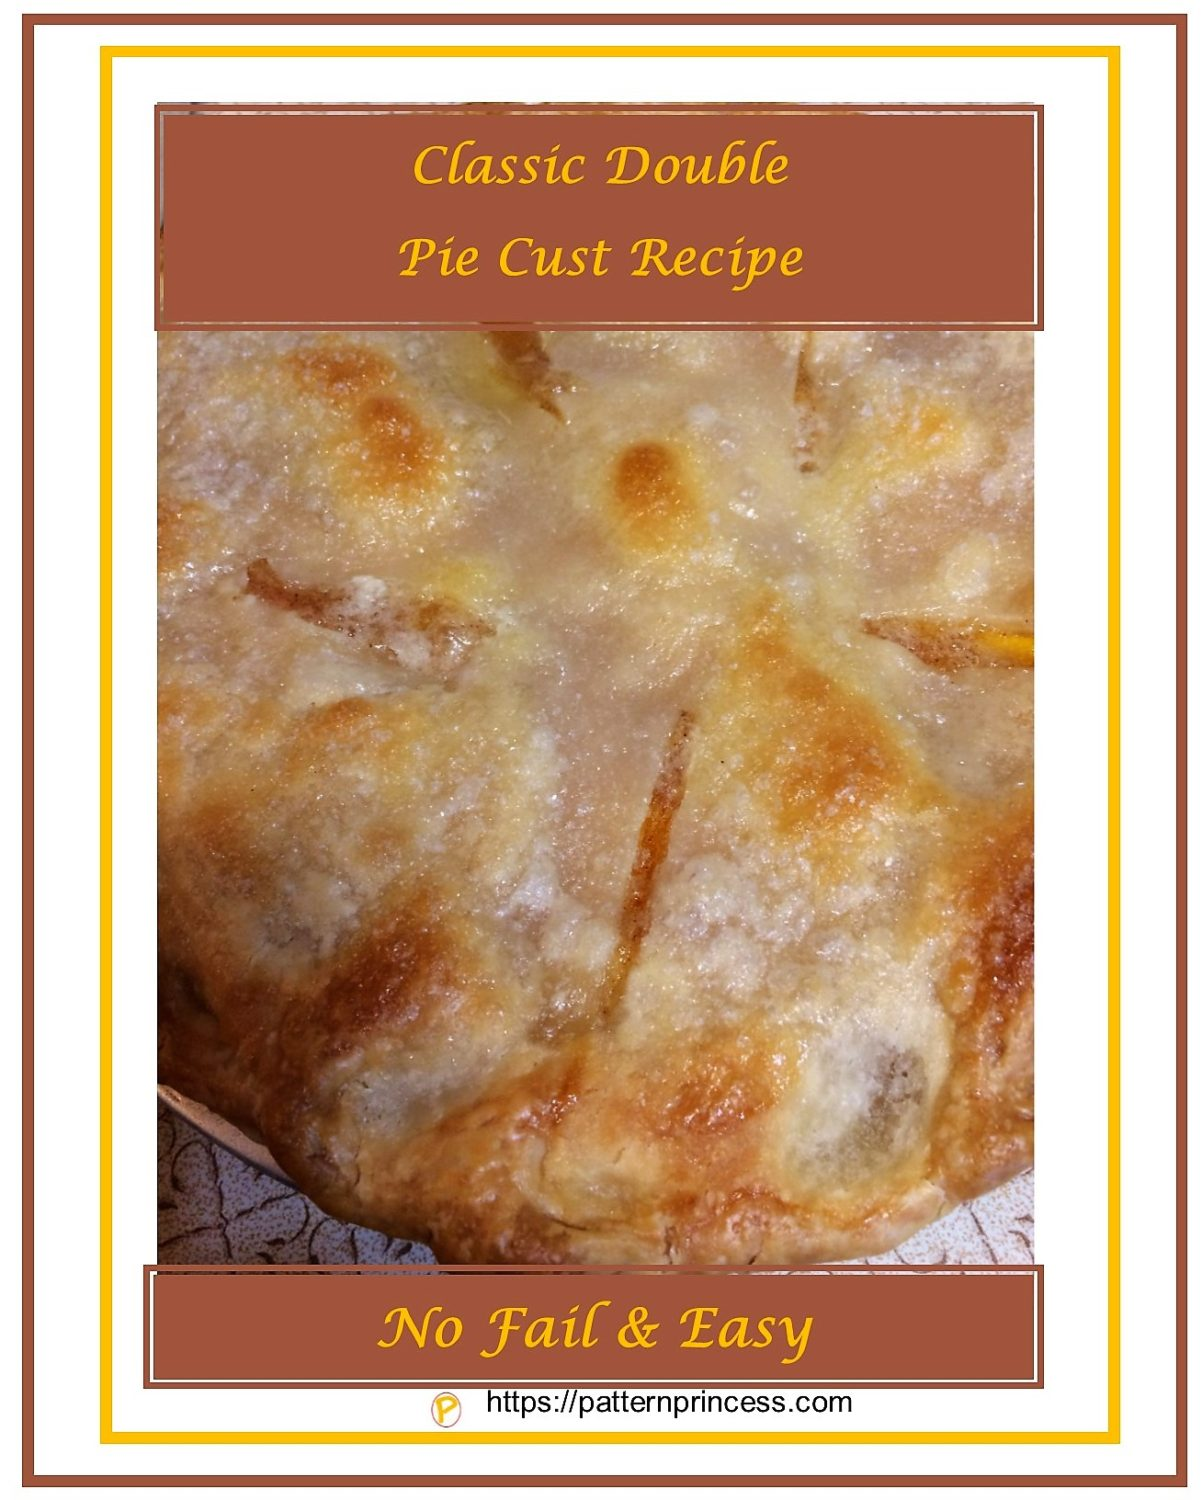 Classic Double Crust Pie Recipe 1